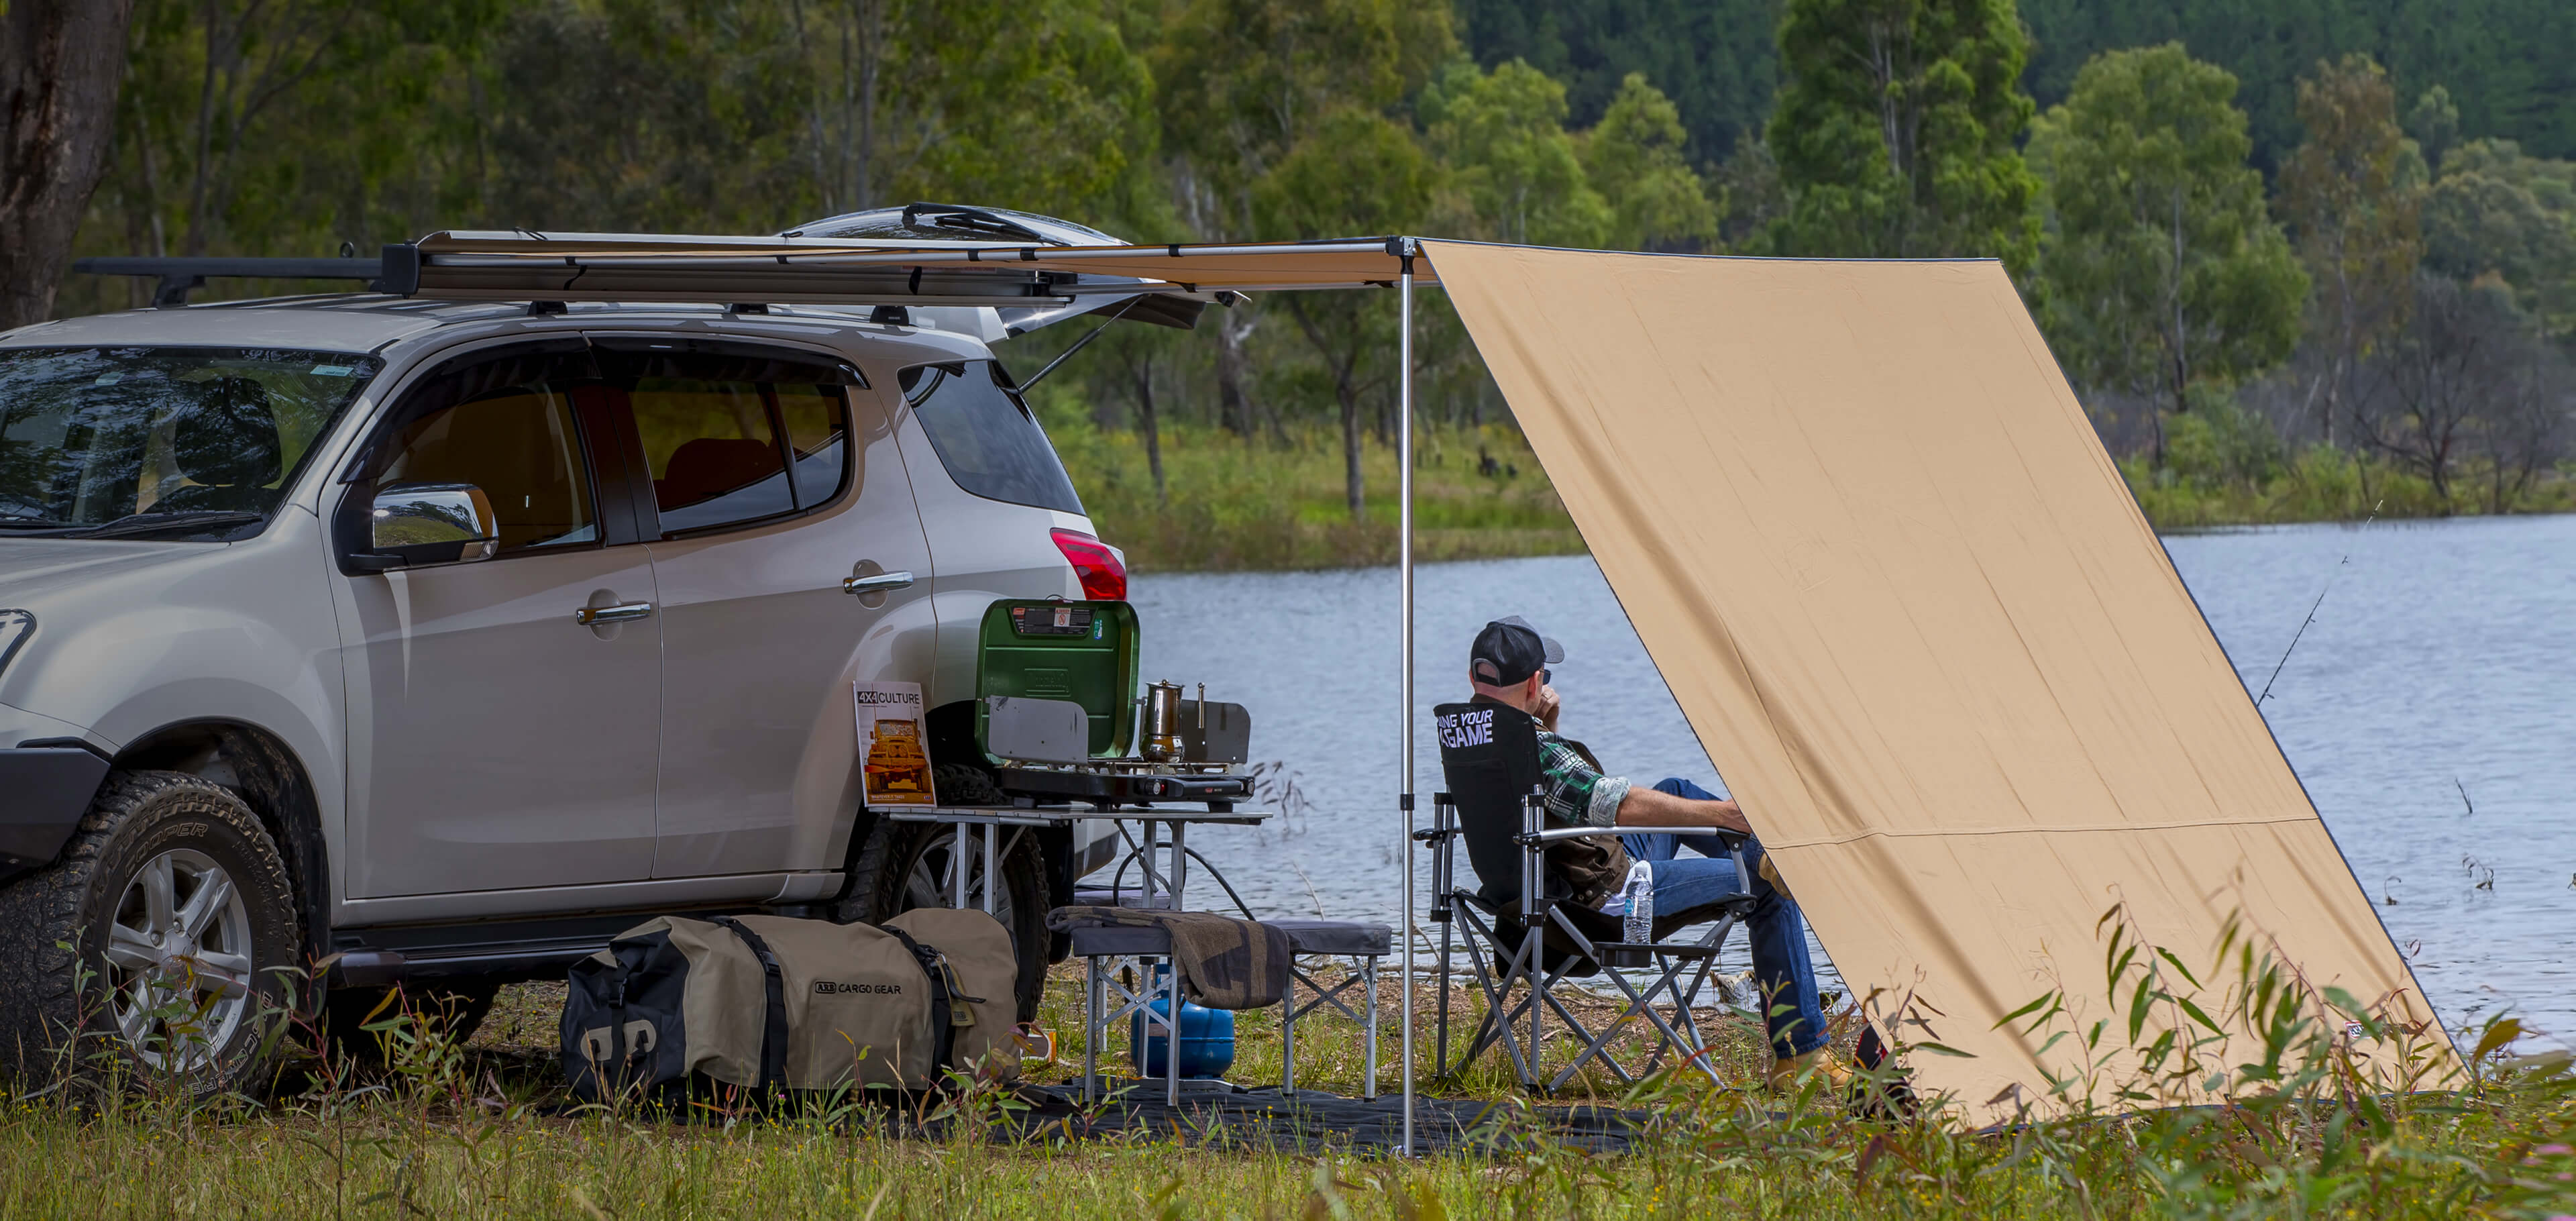 89 Camping Awnings For Cars